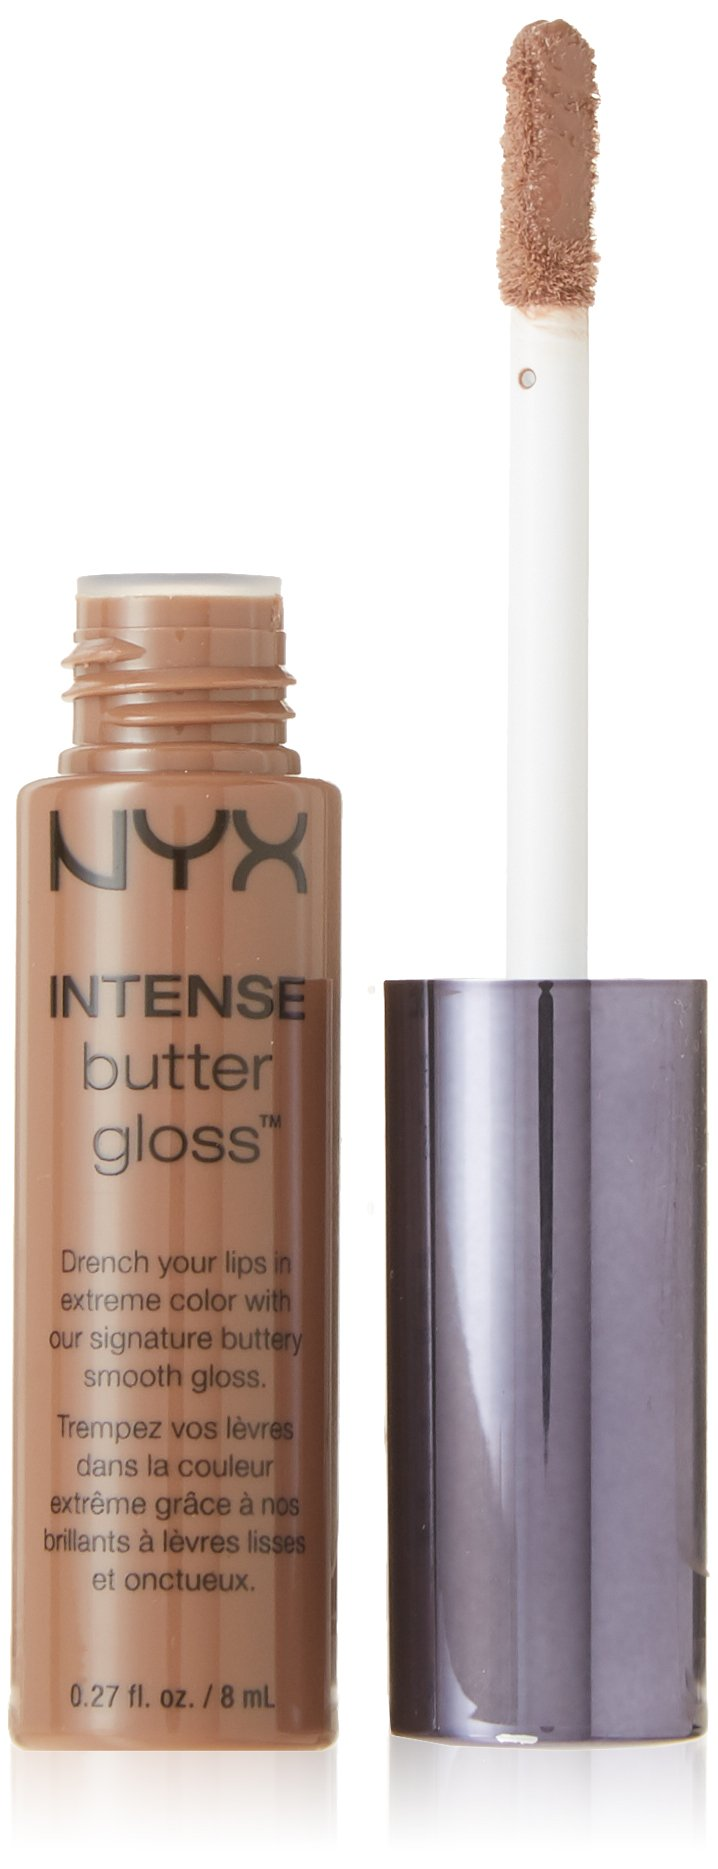 NYX PROFESSIONAL MAKEUP Intense Butter Gloss, Cinnamon Roll, 0.27 Fluid Ounce by NYX PROFESSIONAL MAKEUP